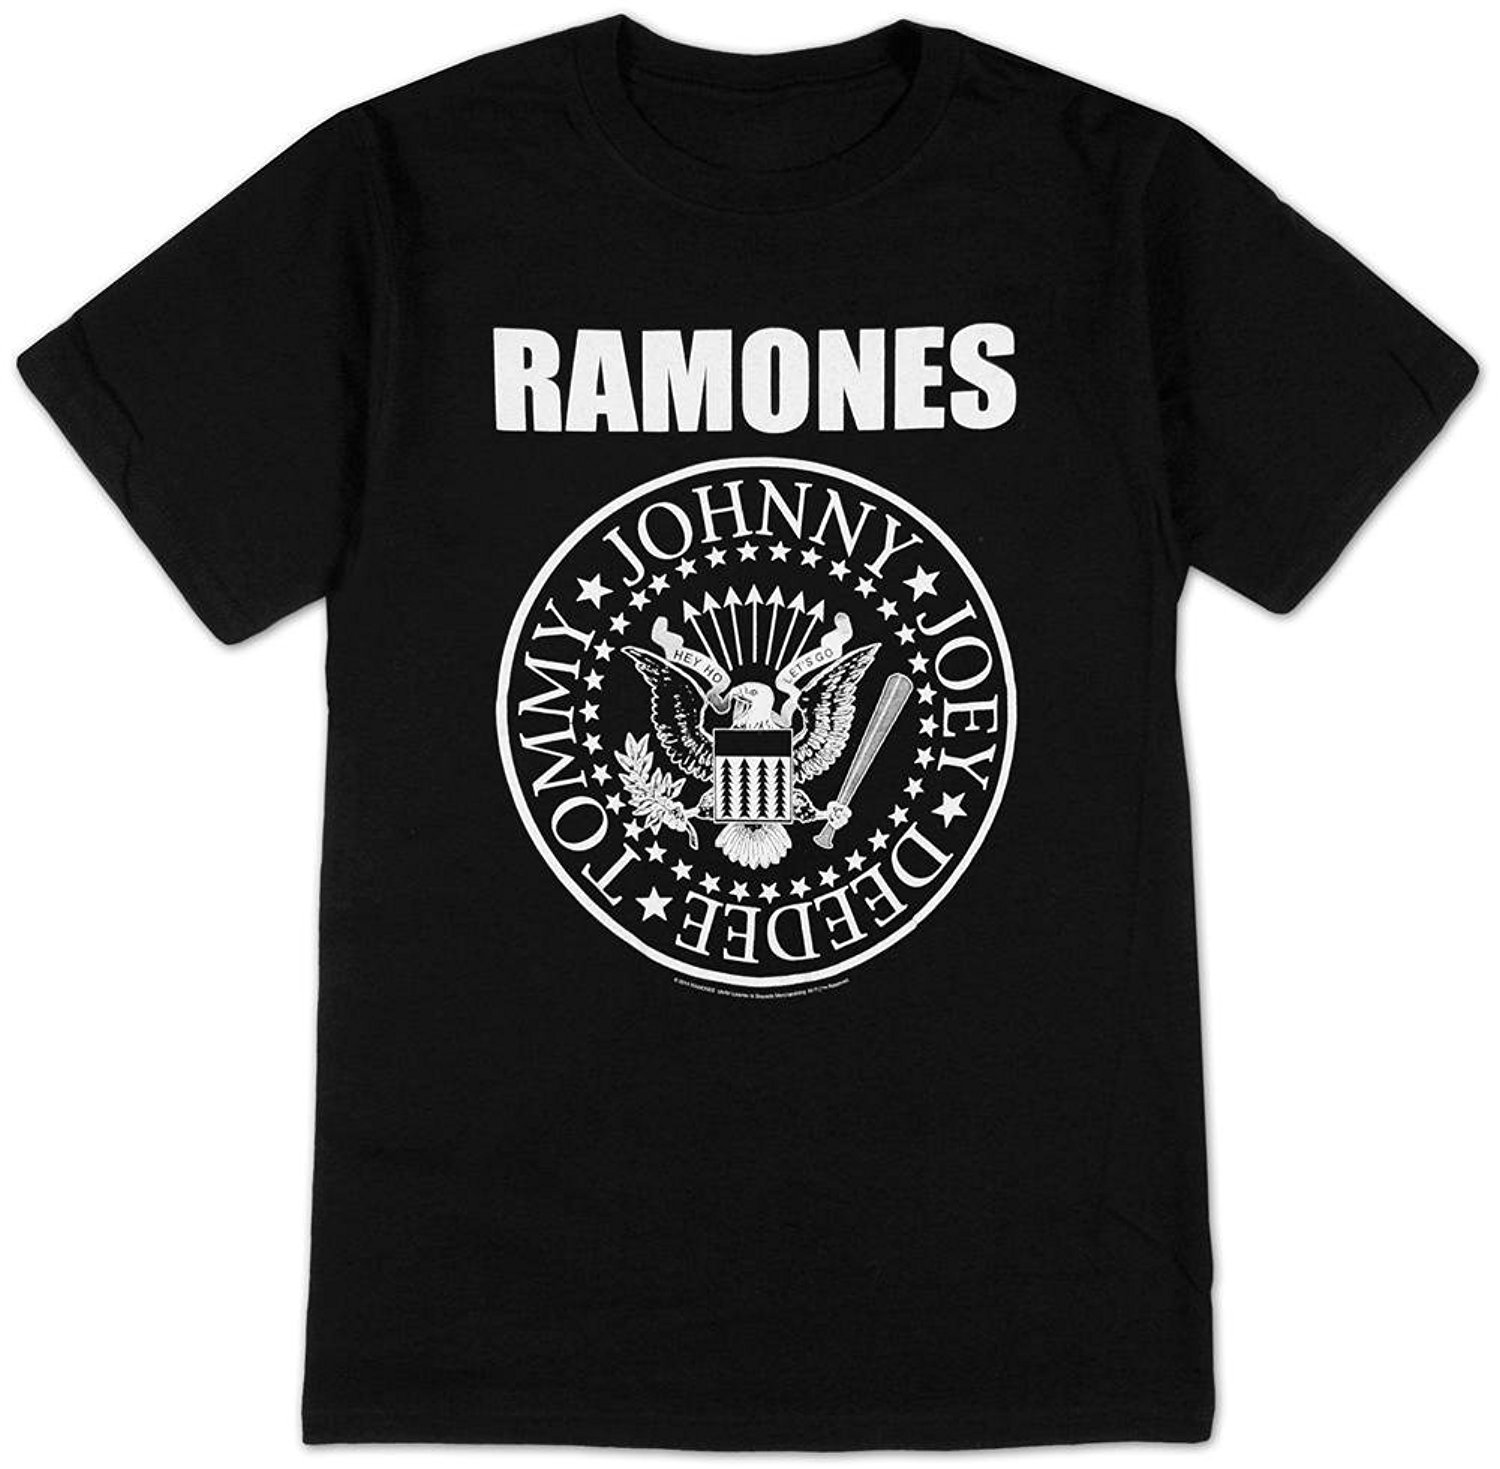 2017 hot Summer funny cool Fashion Printed Hipster Tops men's T Shirt Impact Men's Ramones Presidential Seal T-Shirt